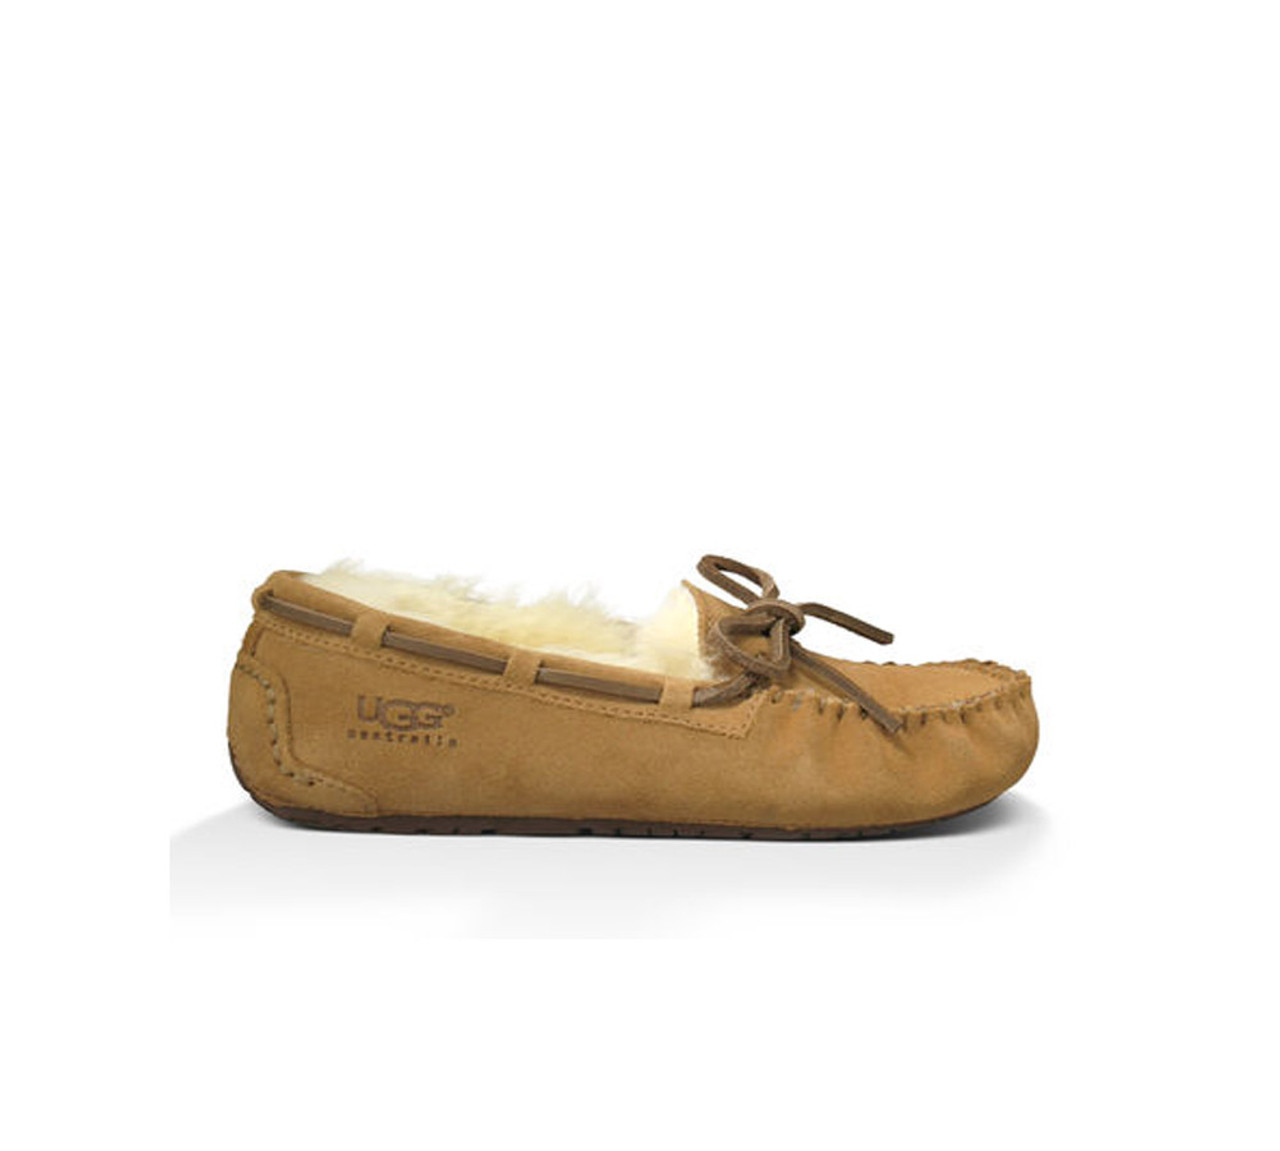 8e5bc494e3c UGG Girls Kids Dakota Slipper Chestnut - Shop now   Shoolu.com